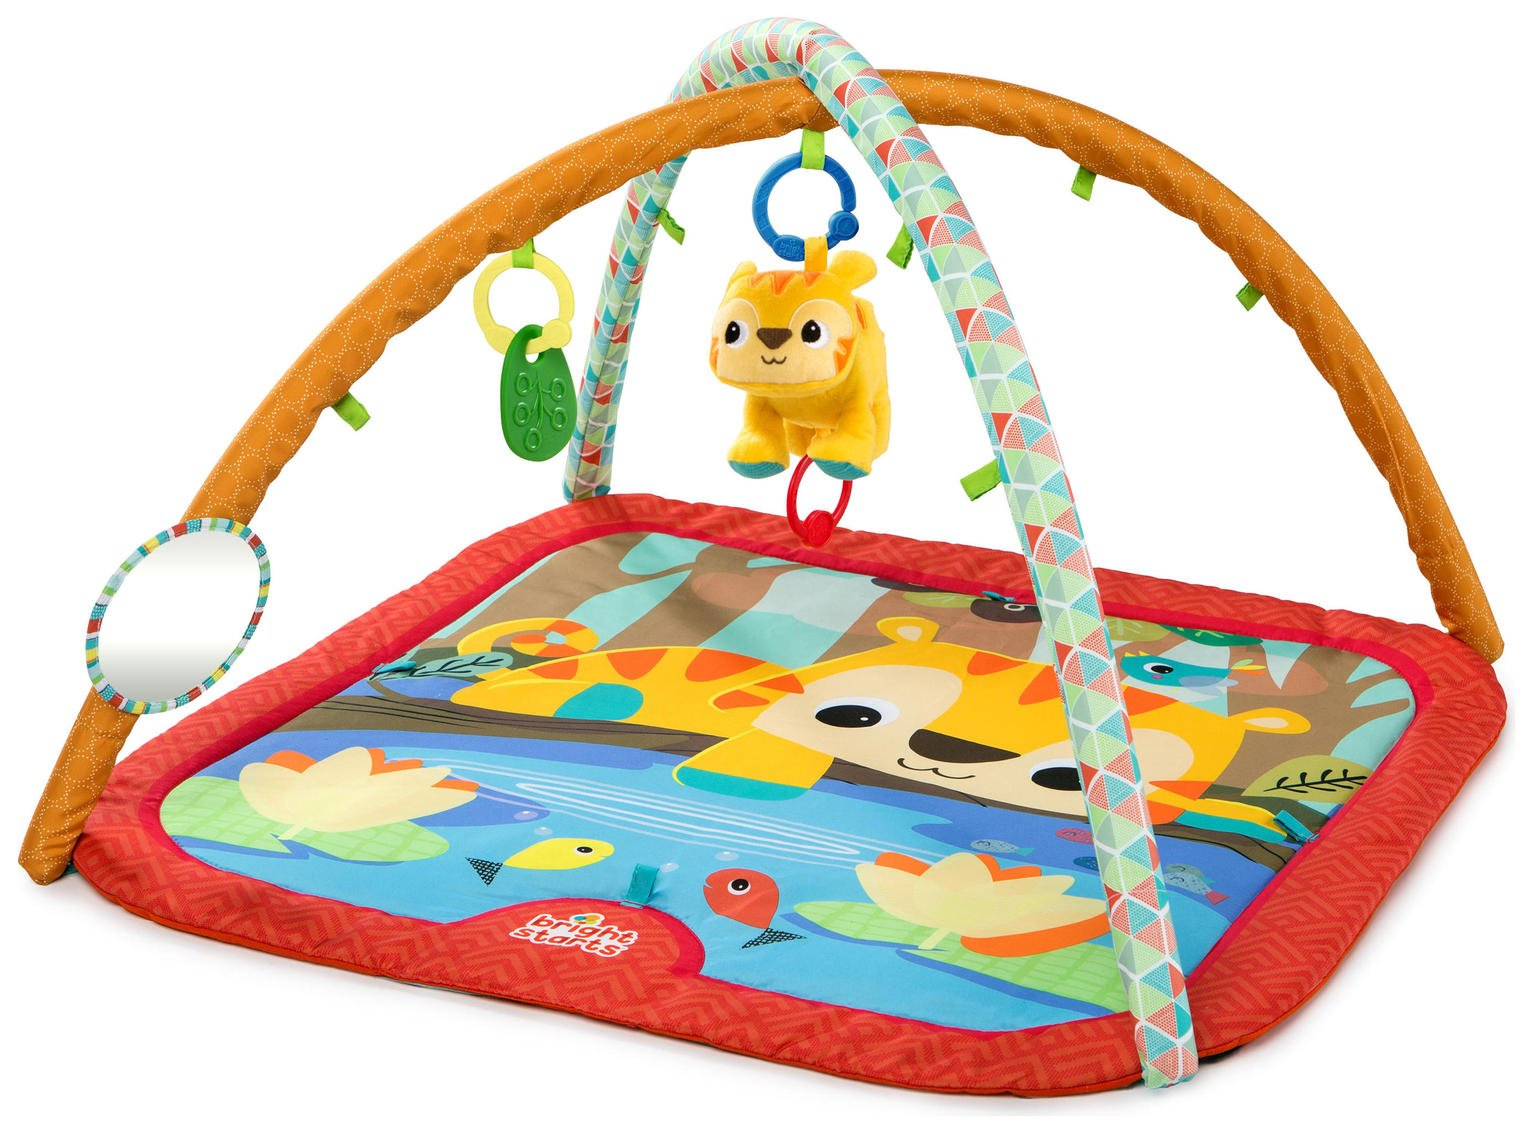 Bright Starts Pal Around Jungle Activity Gym. from Bright Starts